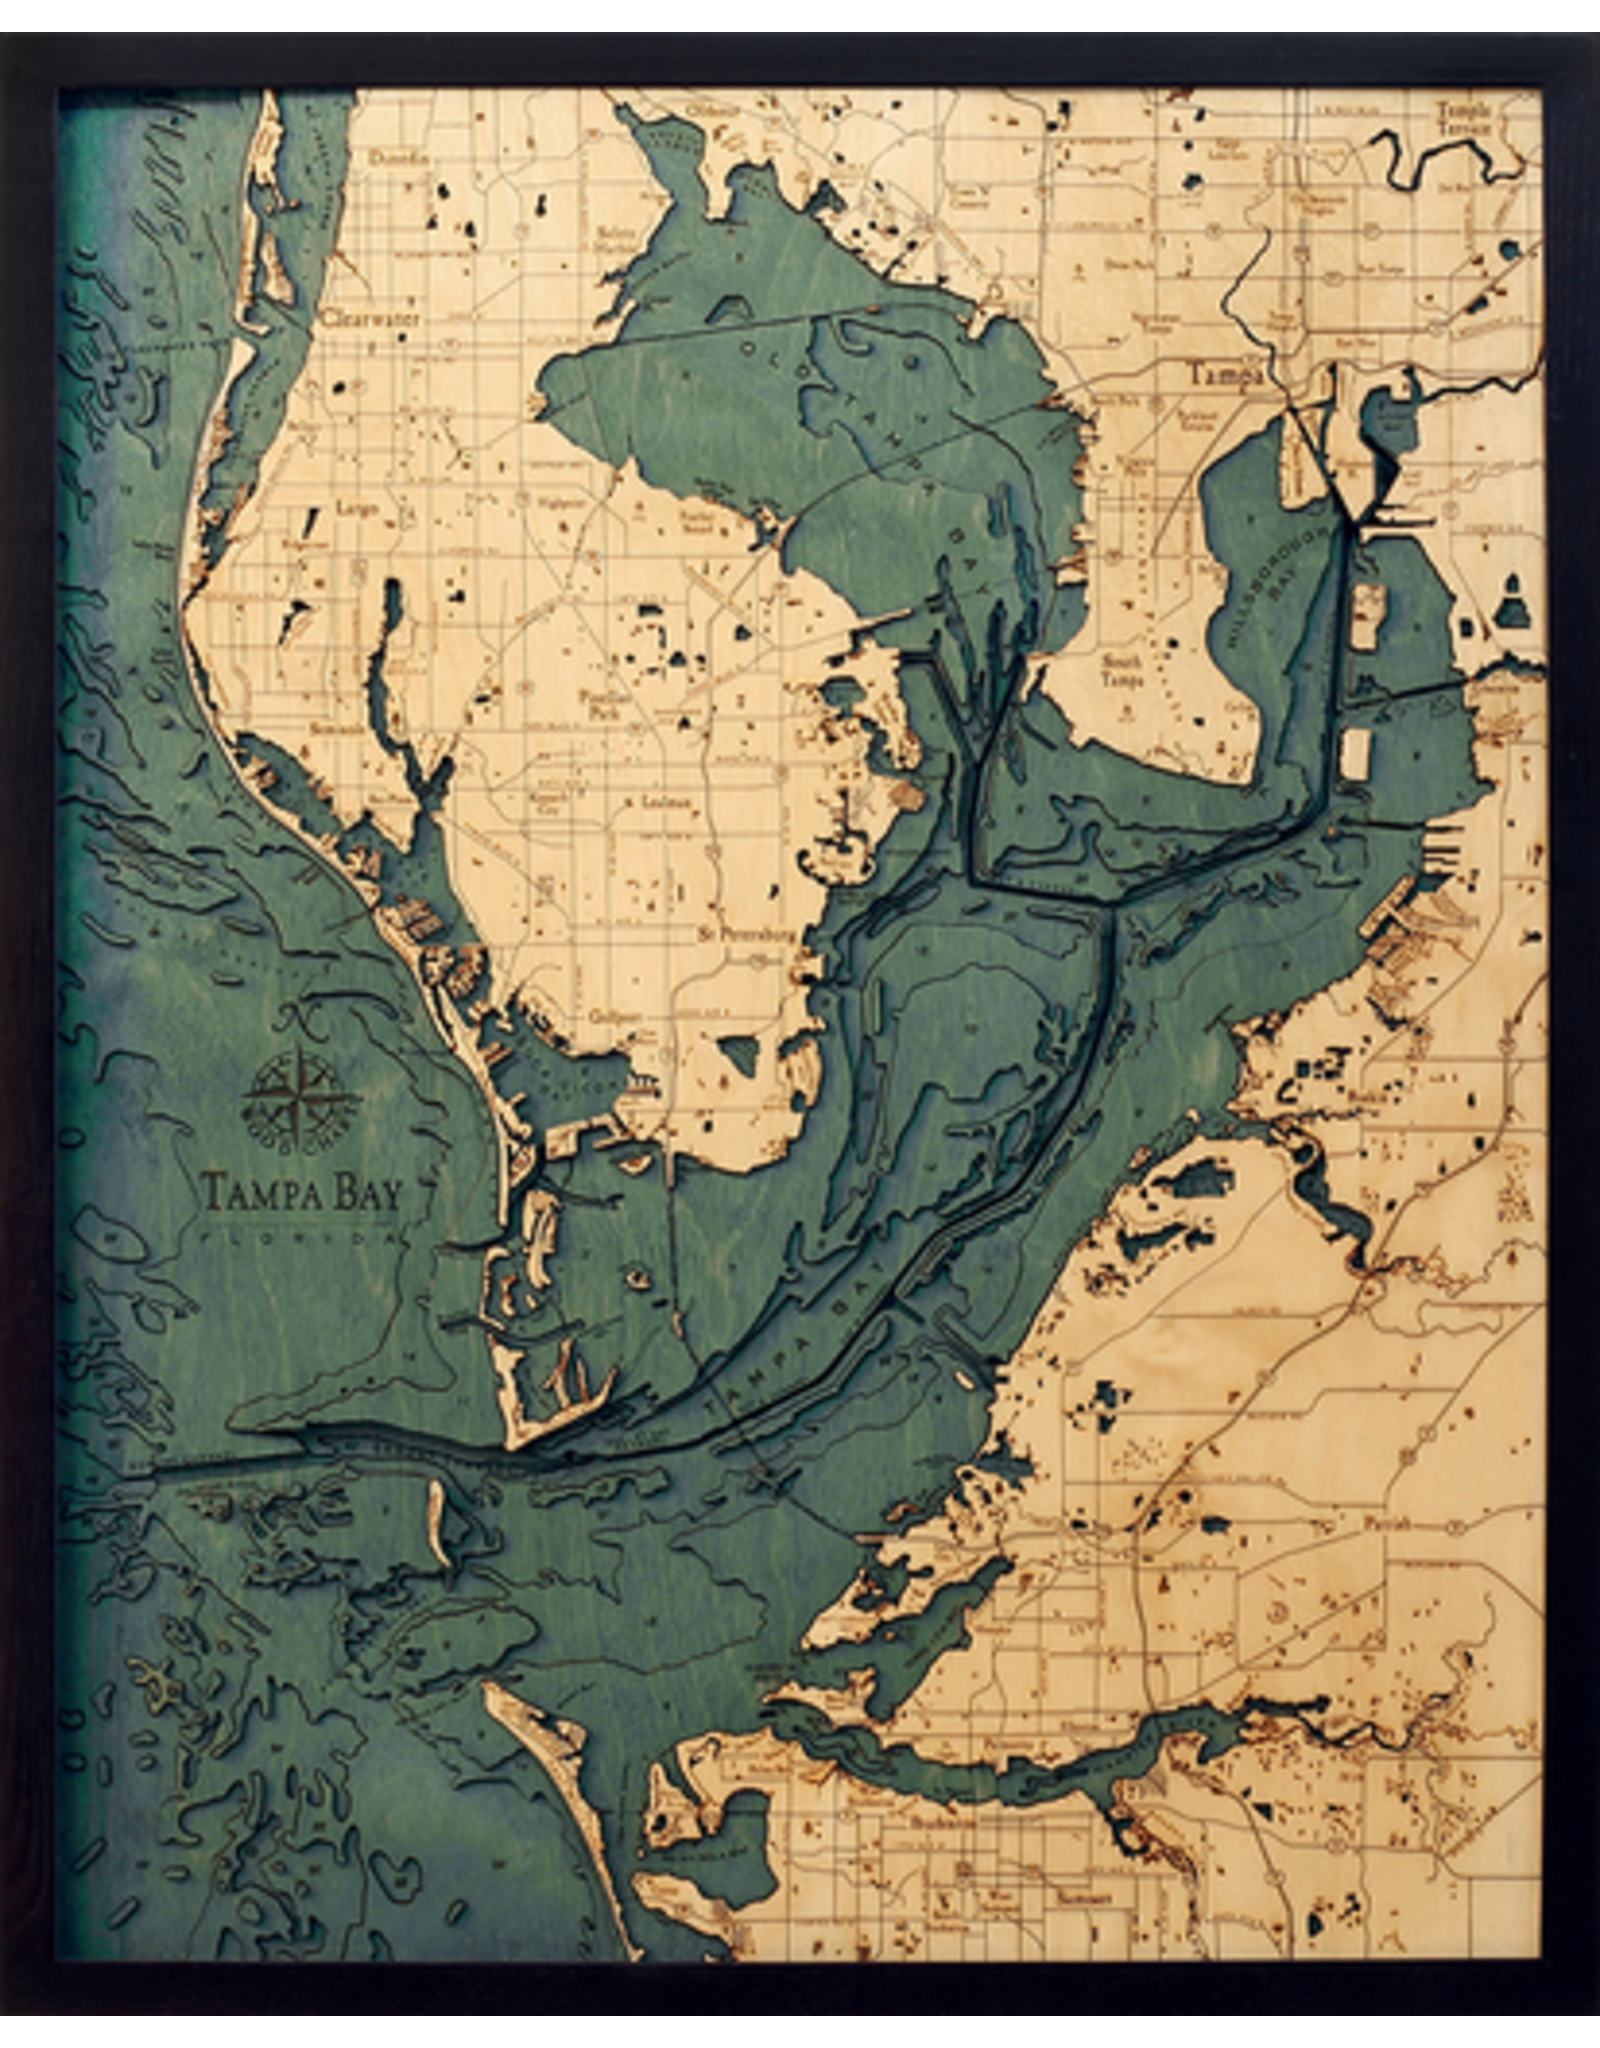 WoodCharts Tampa Bay/St. Petersburg, FL (Bathymetric 3-D Nautical WOODCHART)